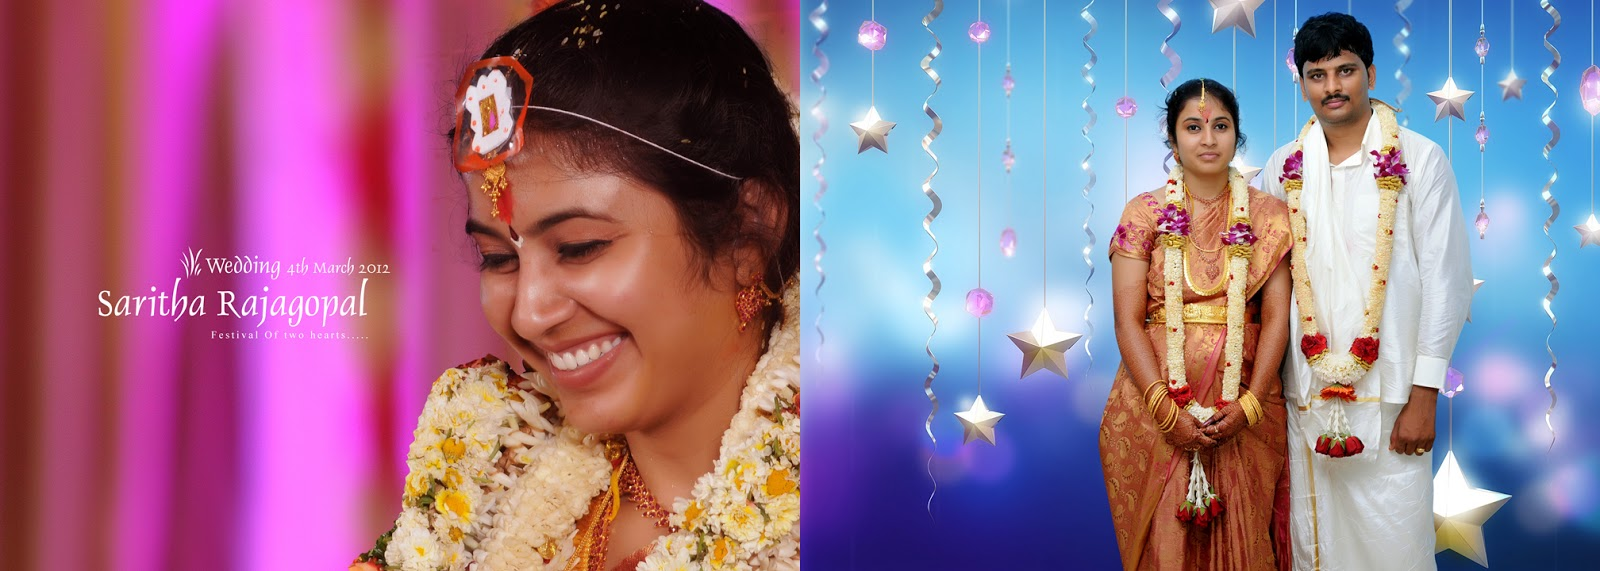 CHENNAI WEDDING ALBUM DESIGNING (Service All Nations): Personal ...